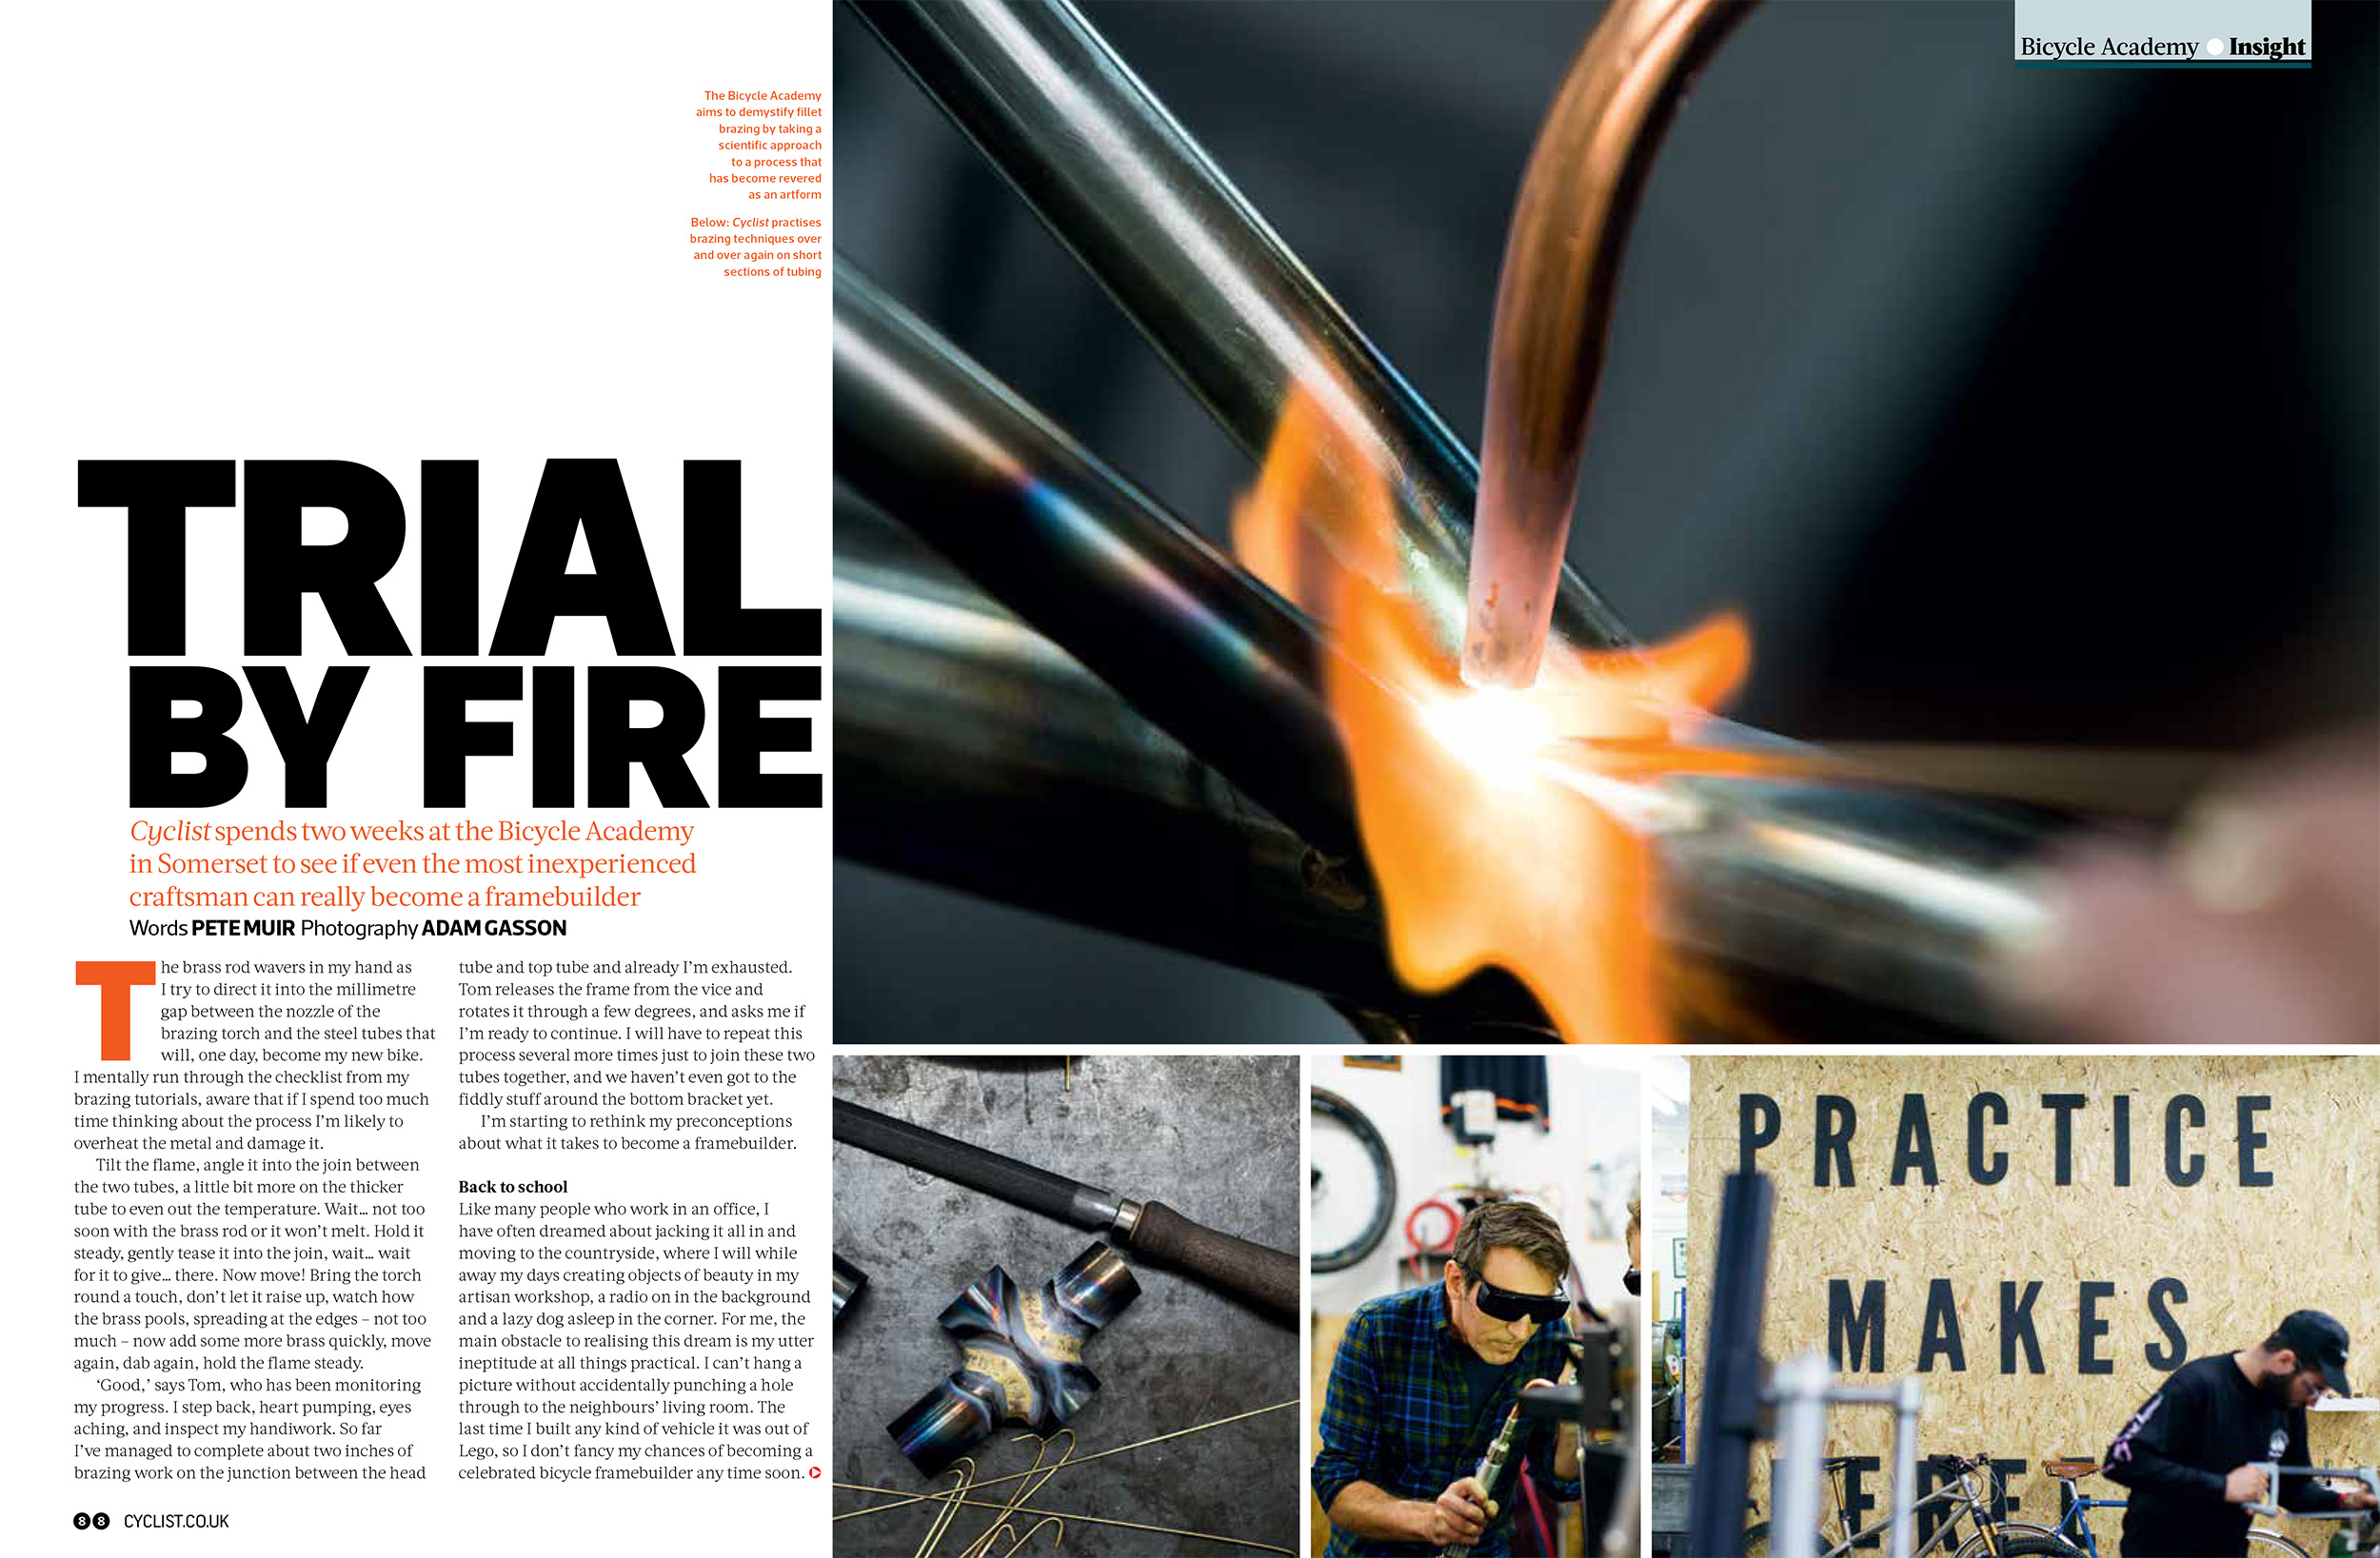 The Bicycle Academy featured in Cyclist. Photo by Adam Gasson / adamgasson.com